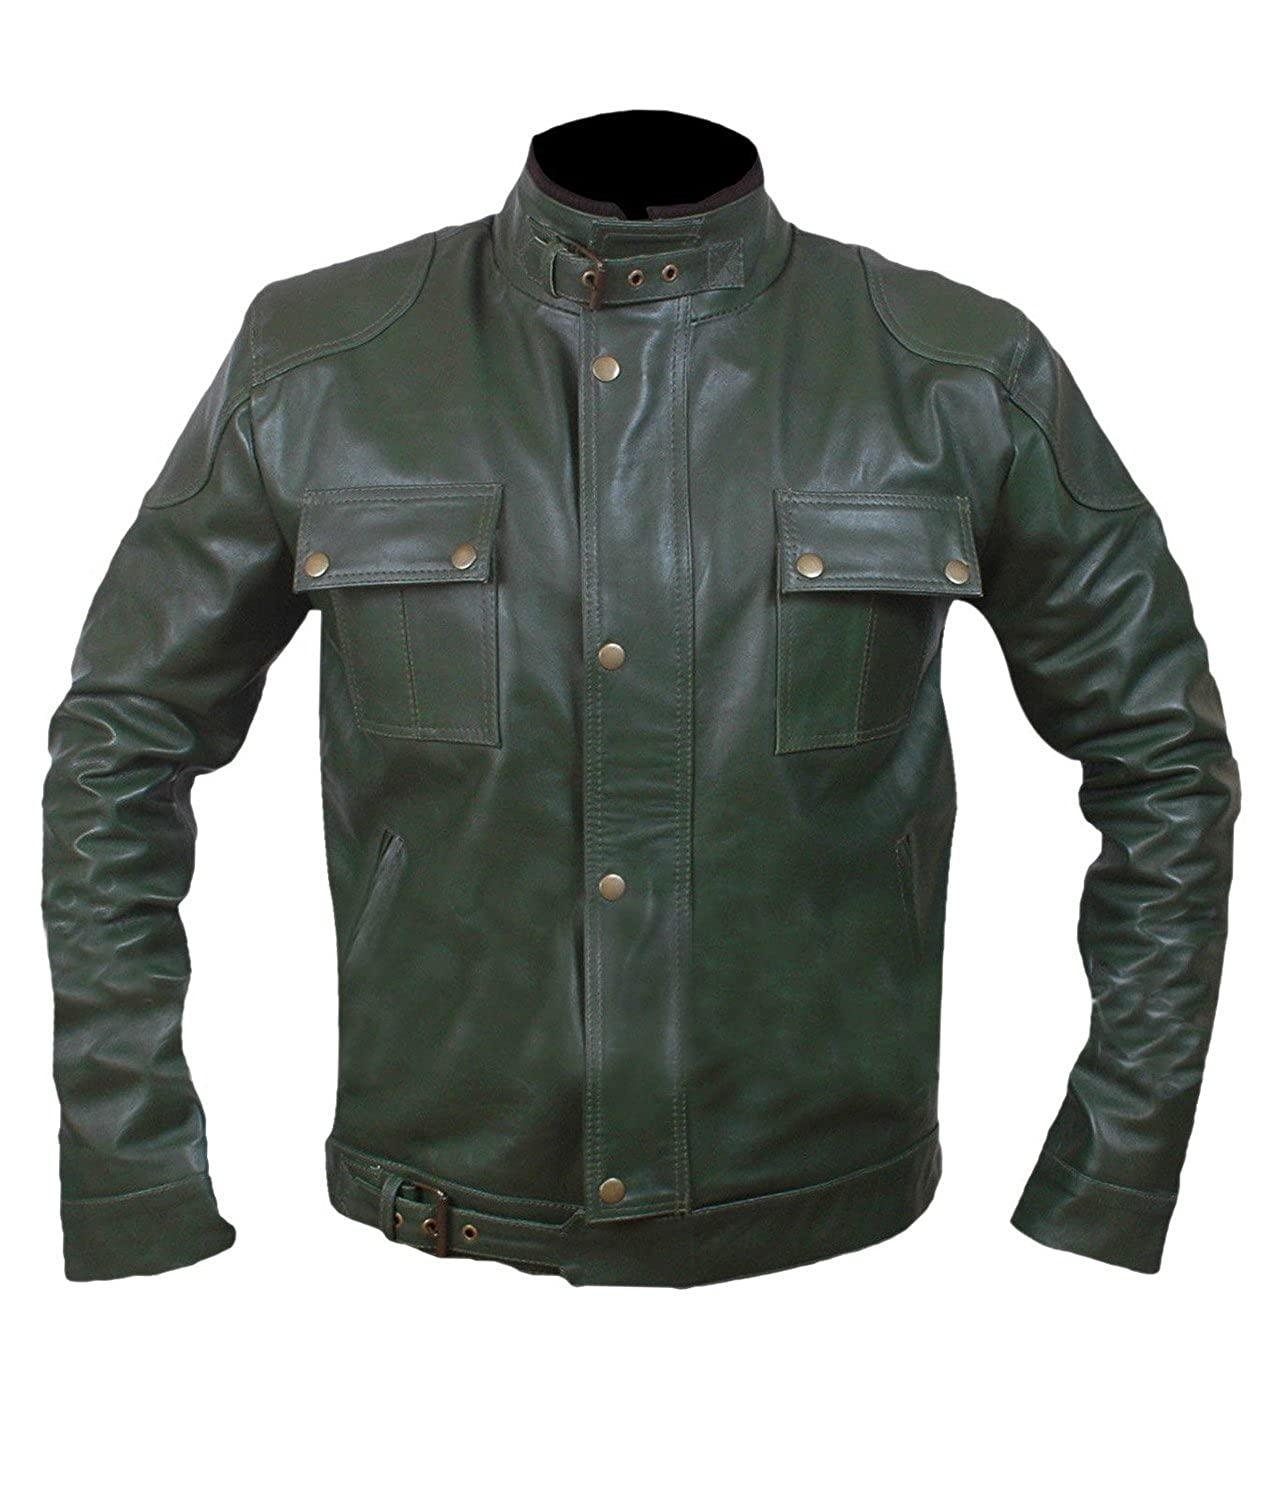 Wanted Wesely Gibson Dirty Green Leather Jacket- Perfect Halloween Costume